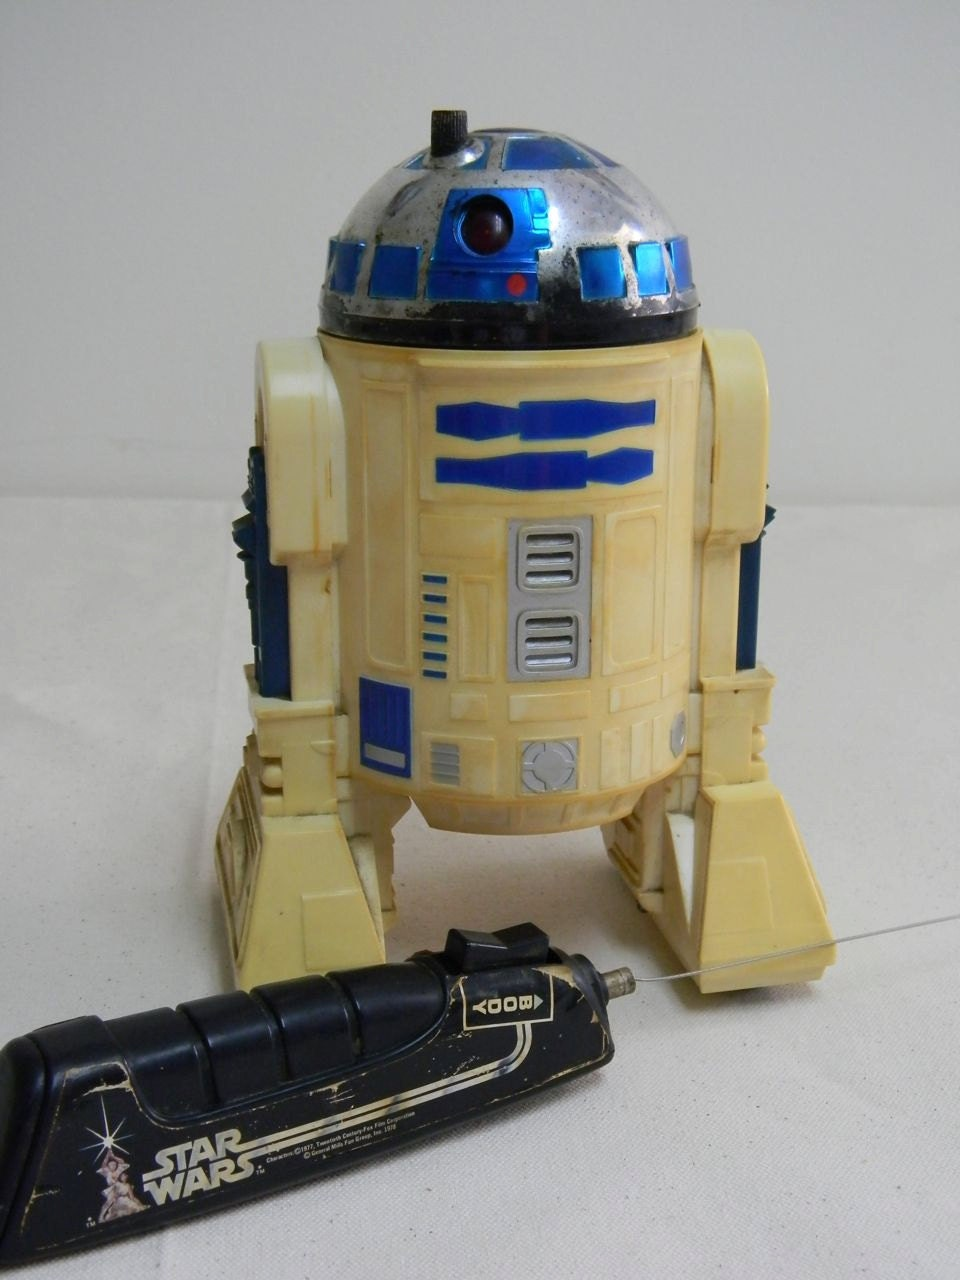 Reserved 1978 Kenner Star Wars R2d2 Radio Controlled Toy With